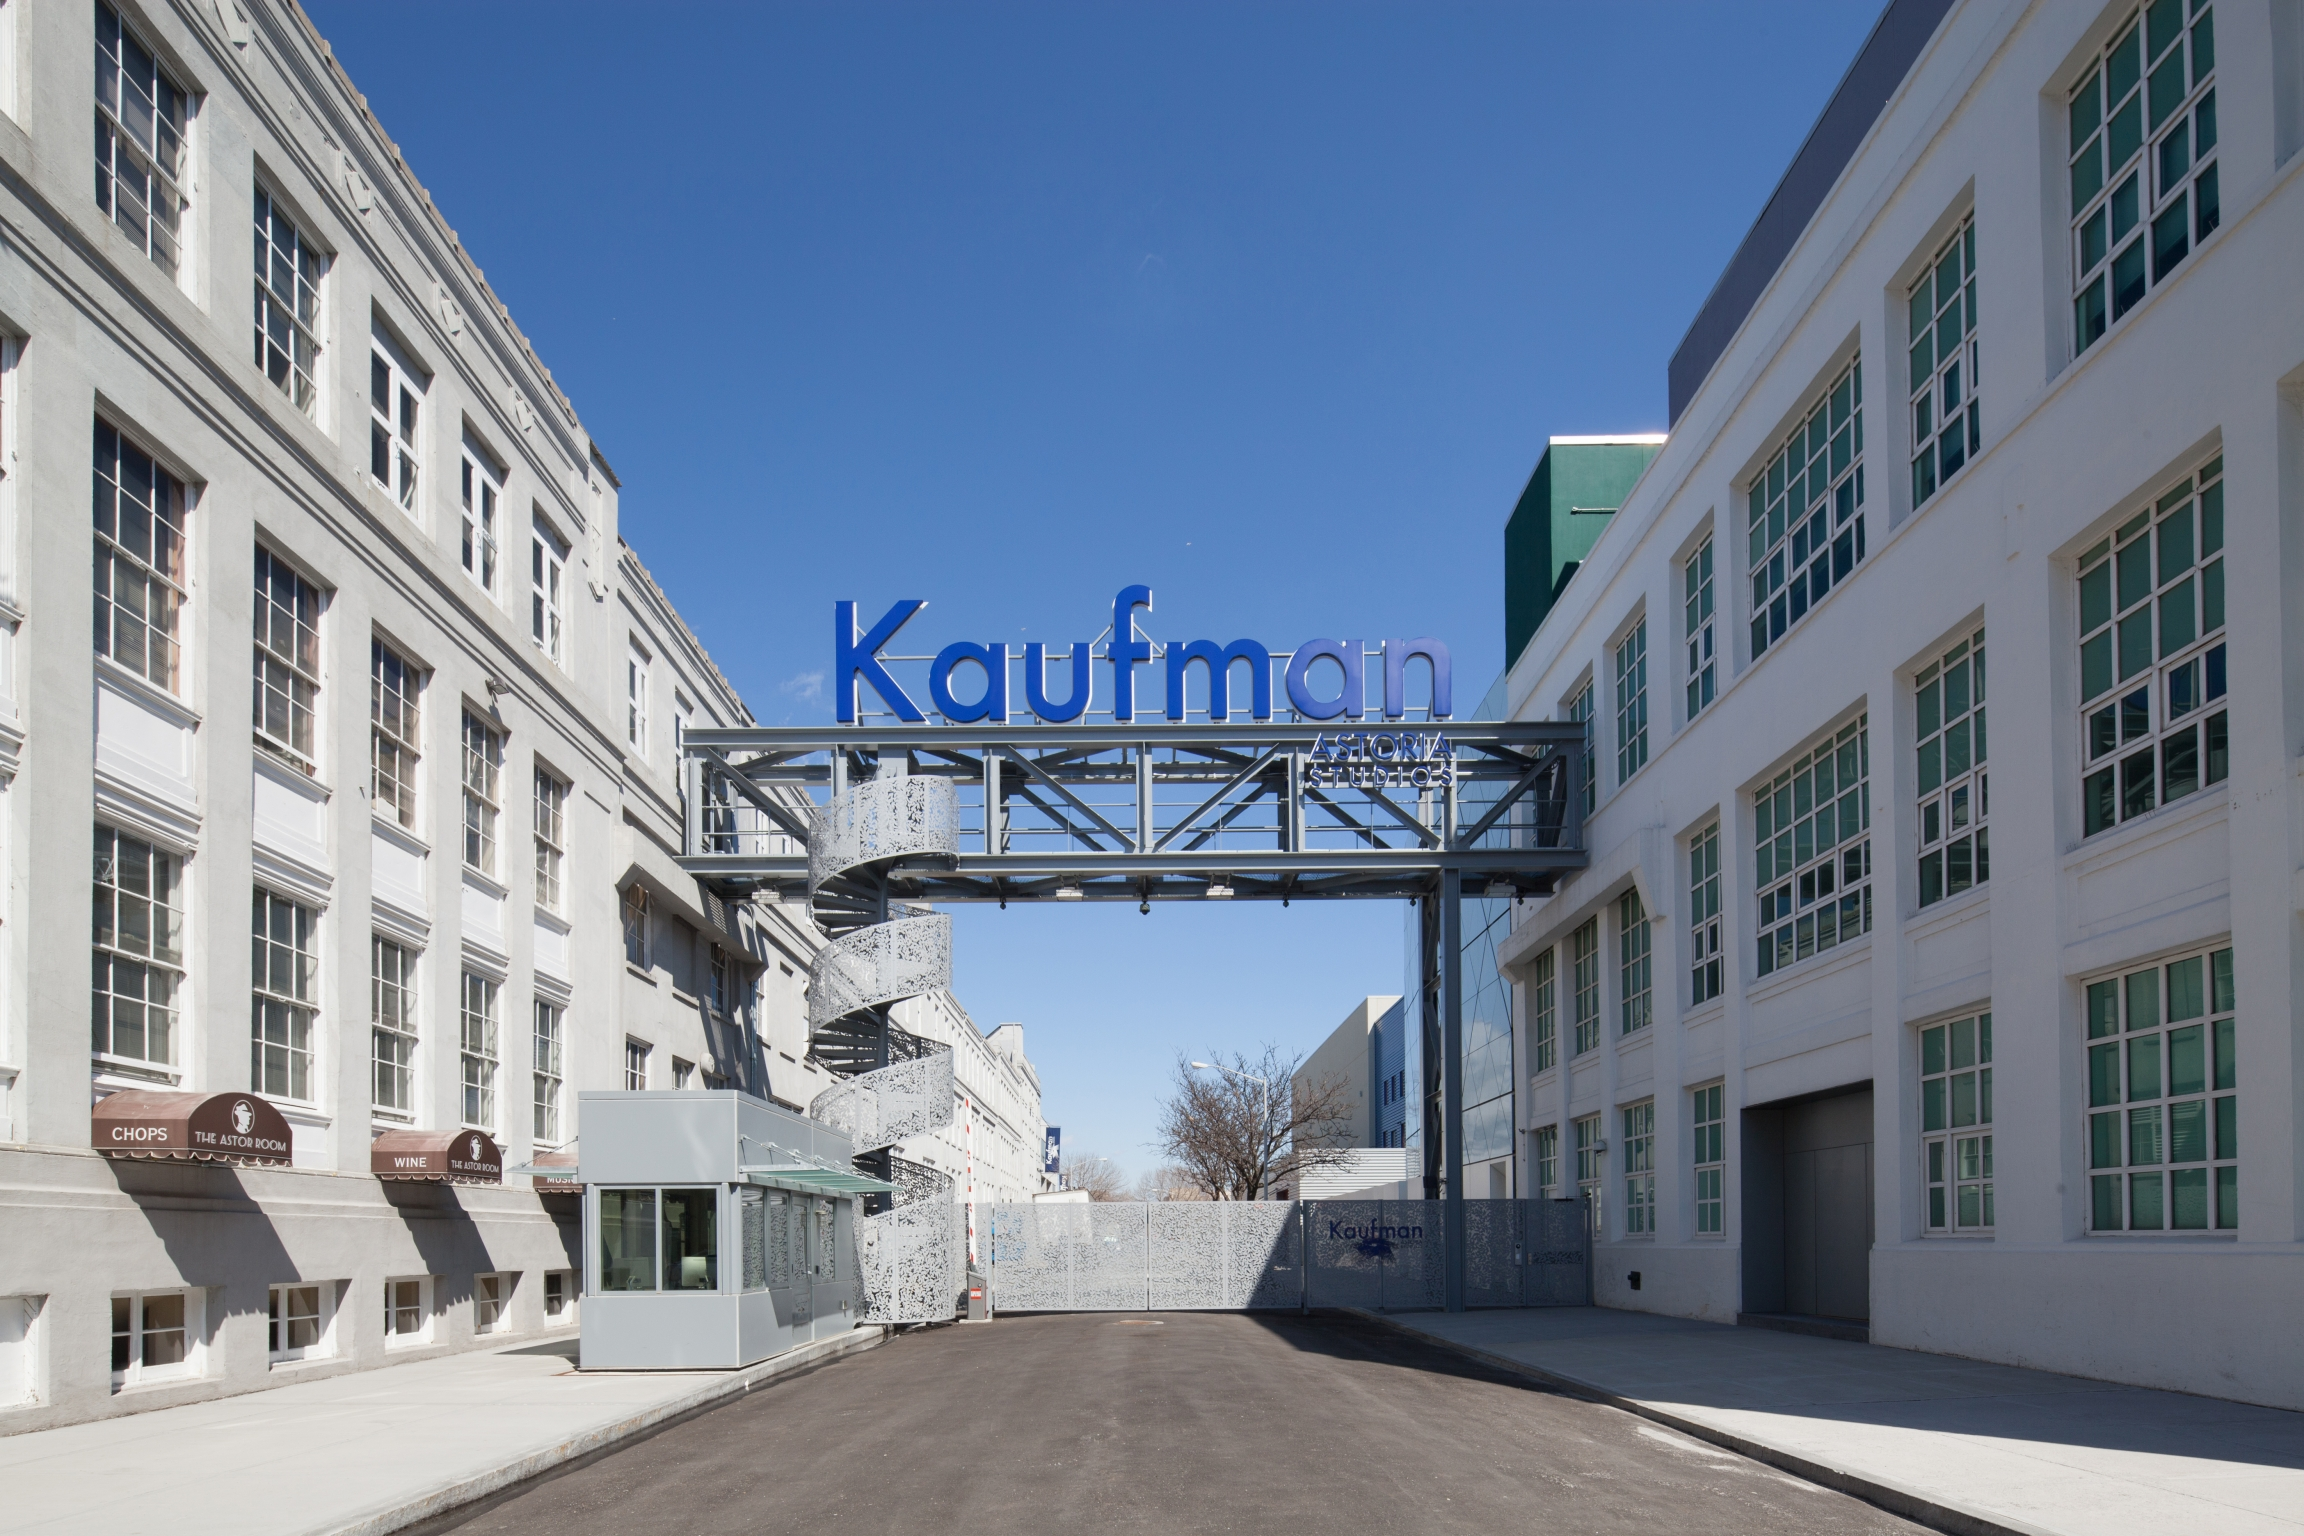 The Kaufman Astoria Studios sign from 35th Avenue.